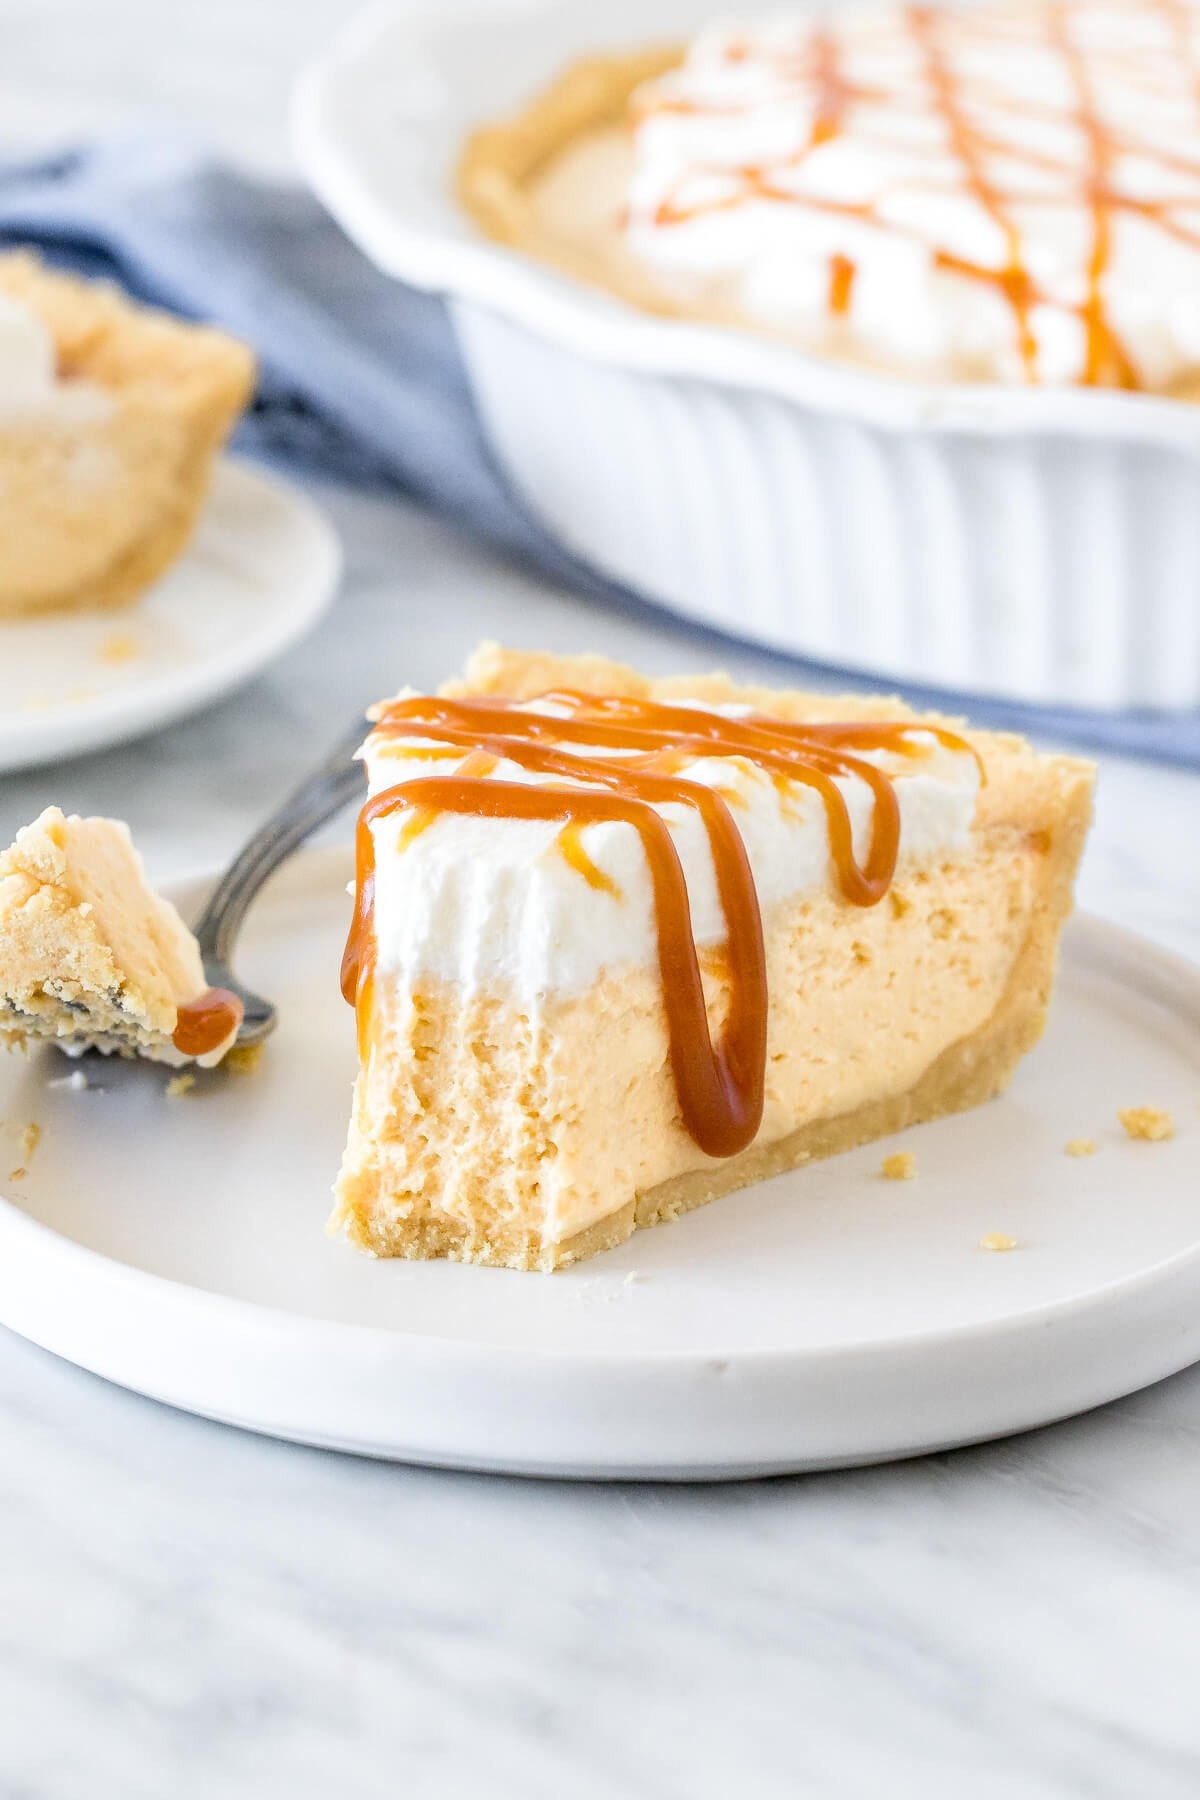 Slice of no-bake caramel cream pie with a bite taken out of it.